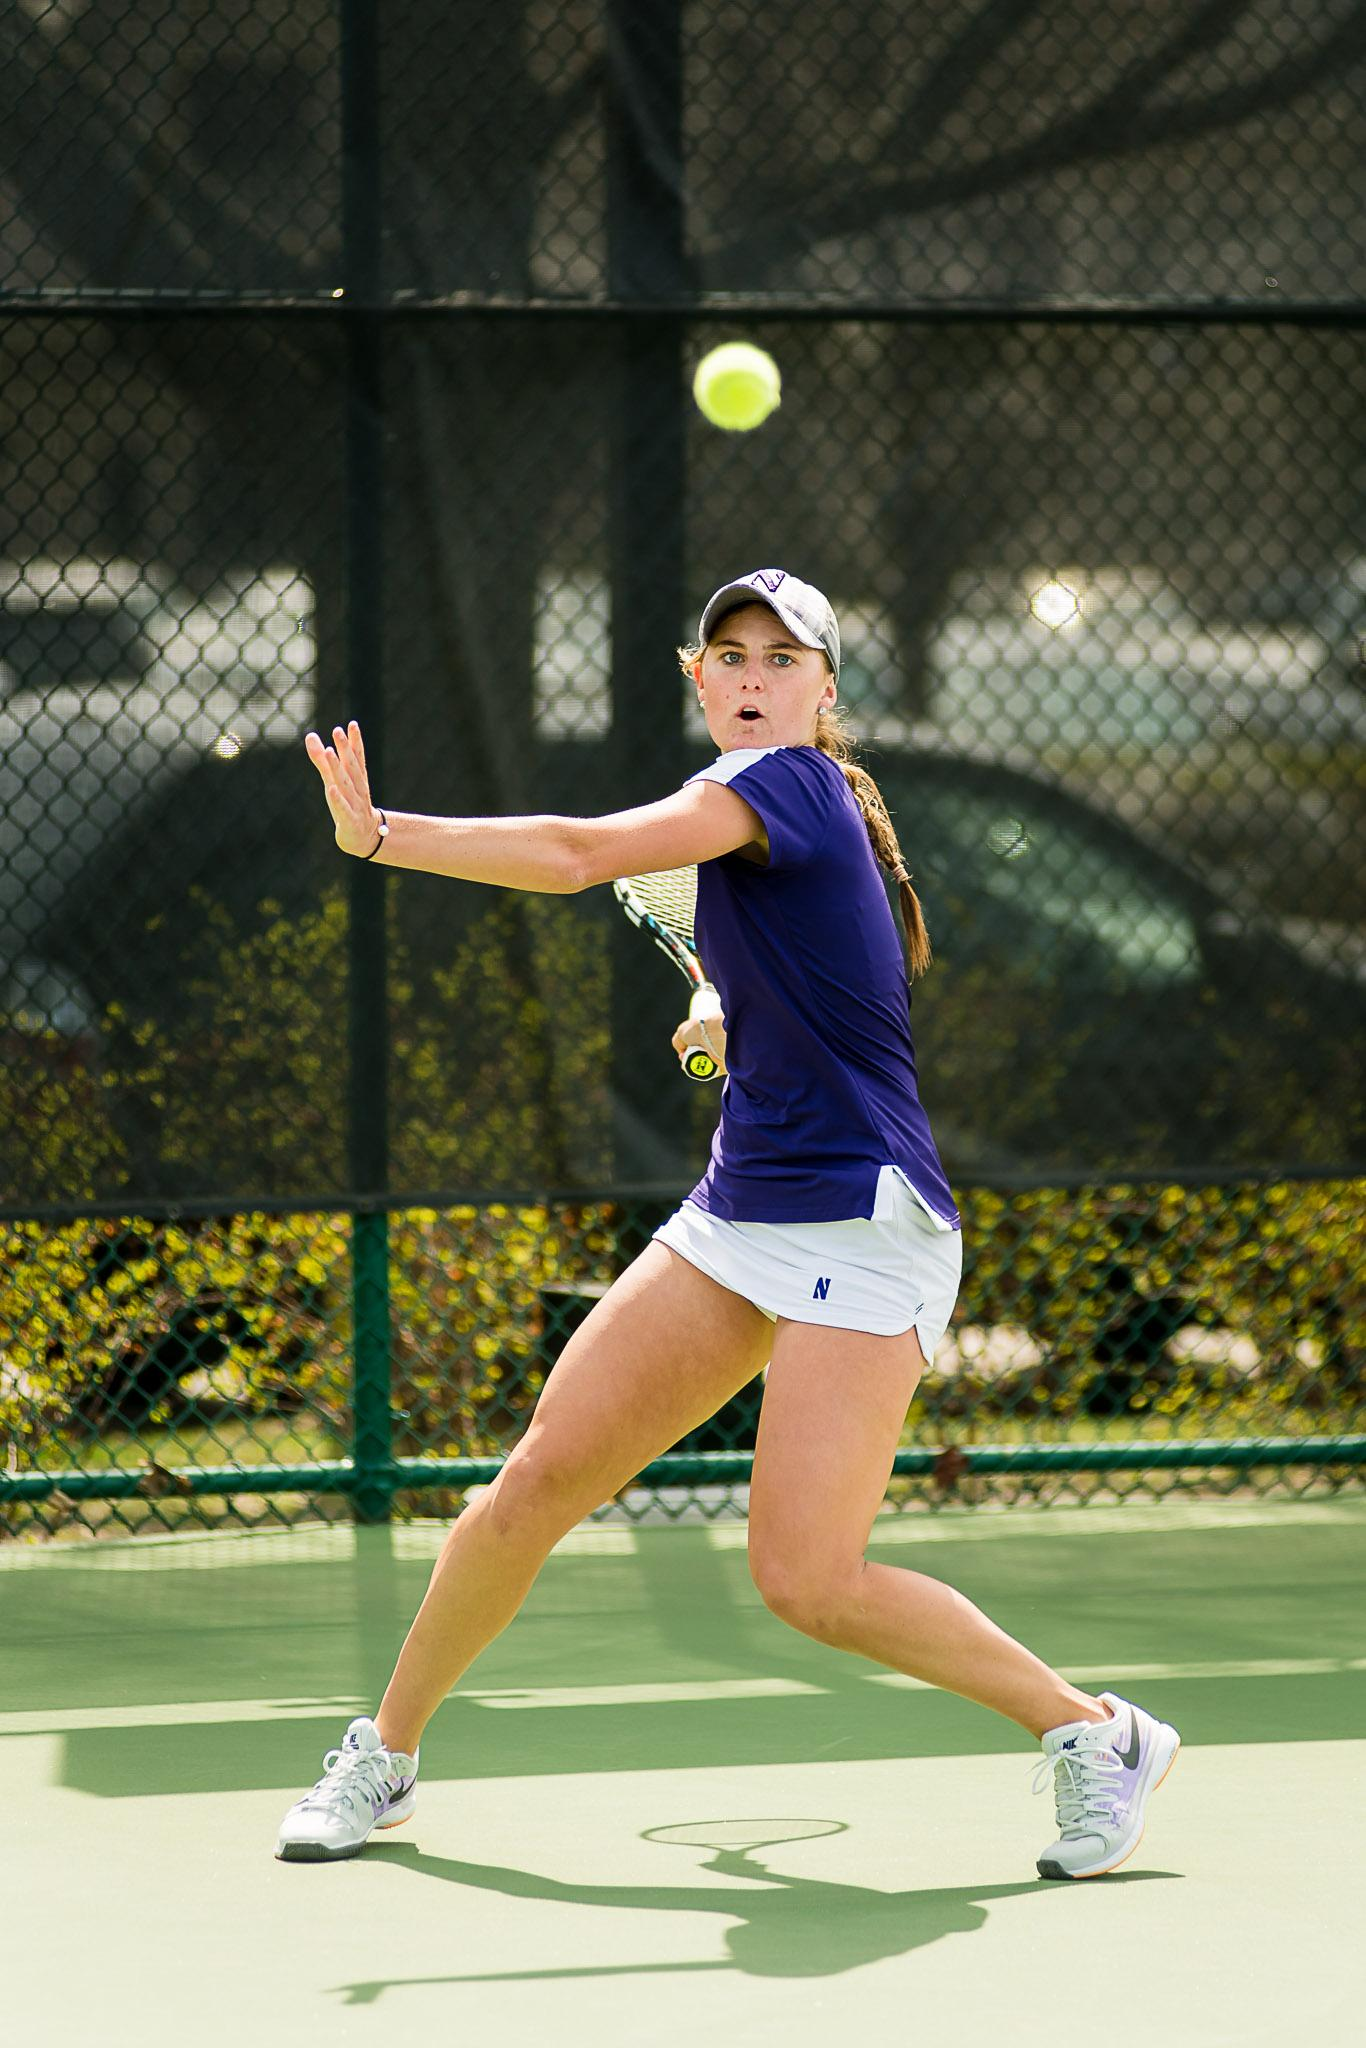 Brooke Rischbieth sets up for a big return. Playing at No. 6 singles, the sophomore will be critical for Northwestern in a close match.